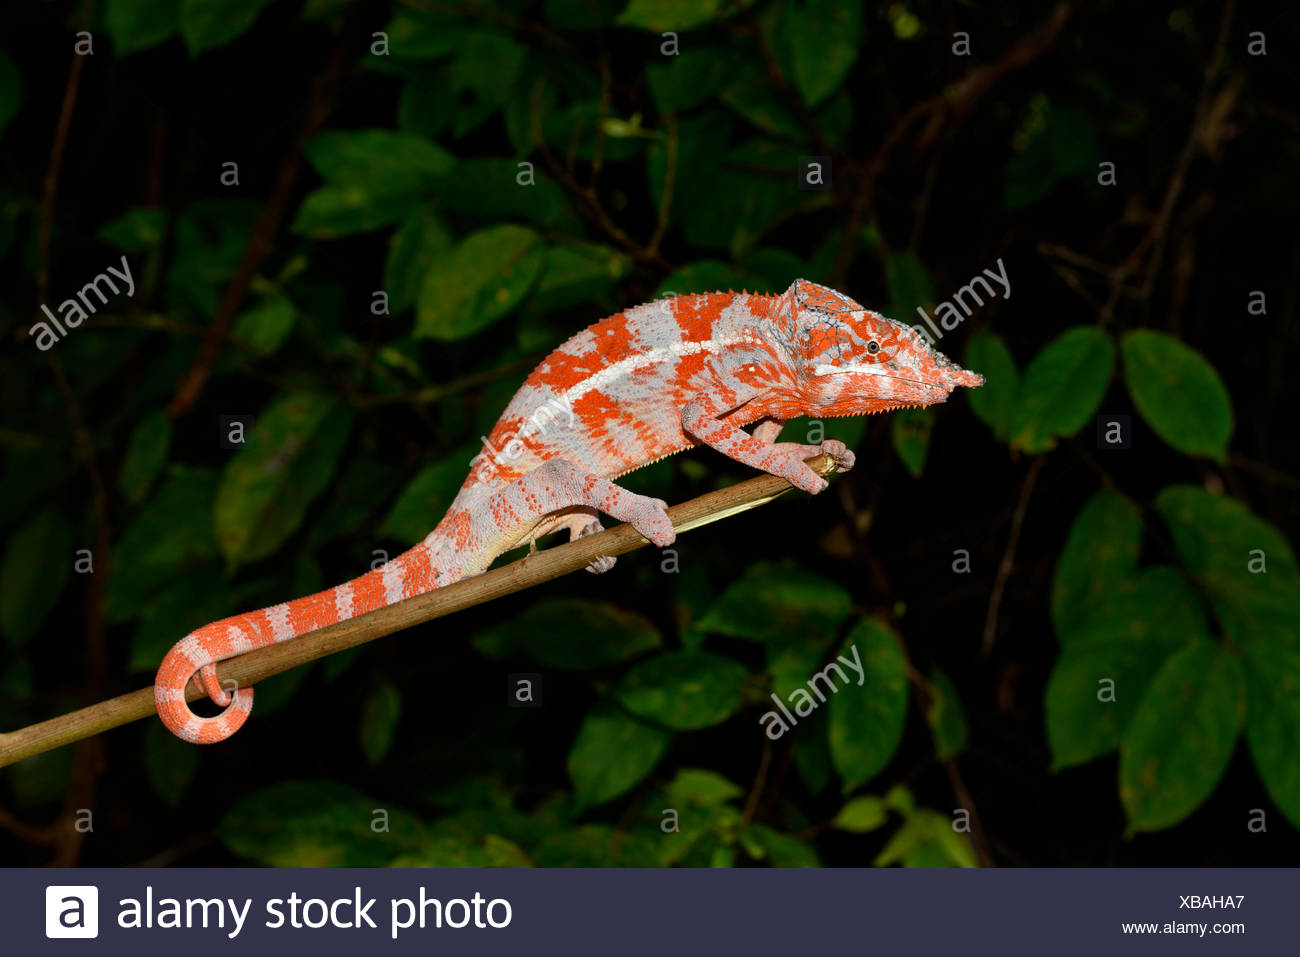 Angel's chameleon (Furcifer angeli), homme, rare, forêt sèche, nord-ouest de Madagascar Photo Stock